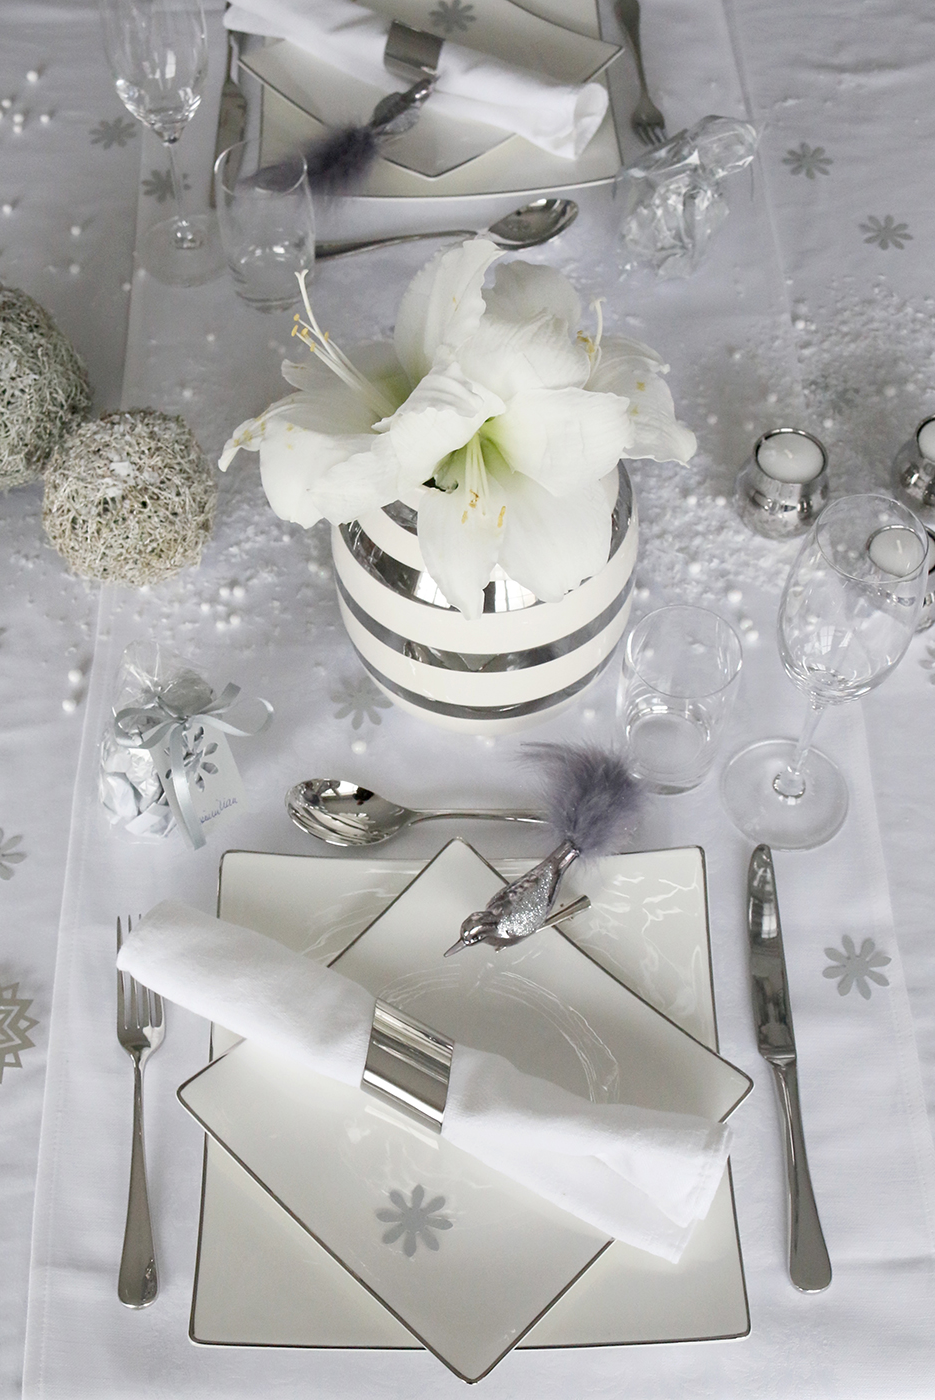 Gorgeous Holiday Tablescape by Anette Willemine